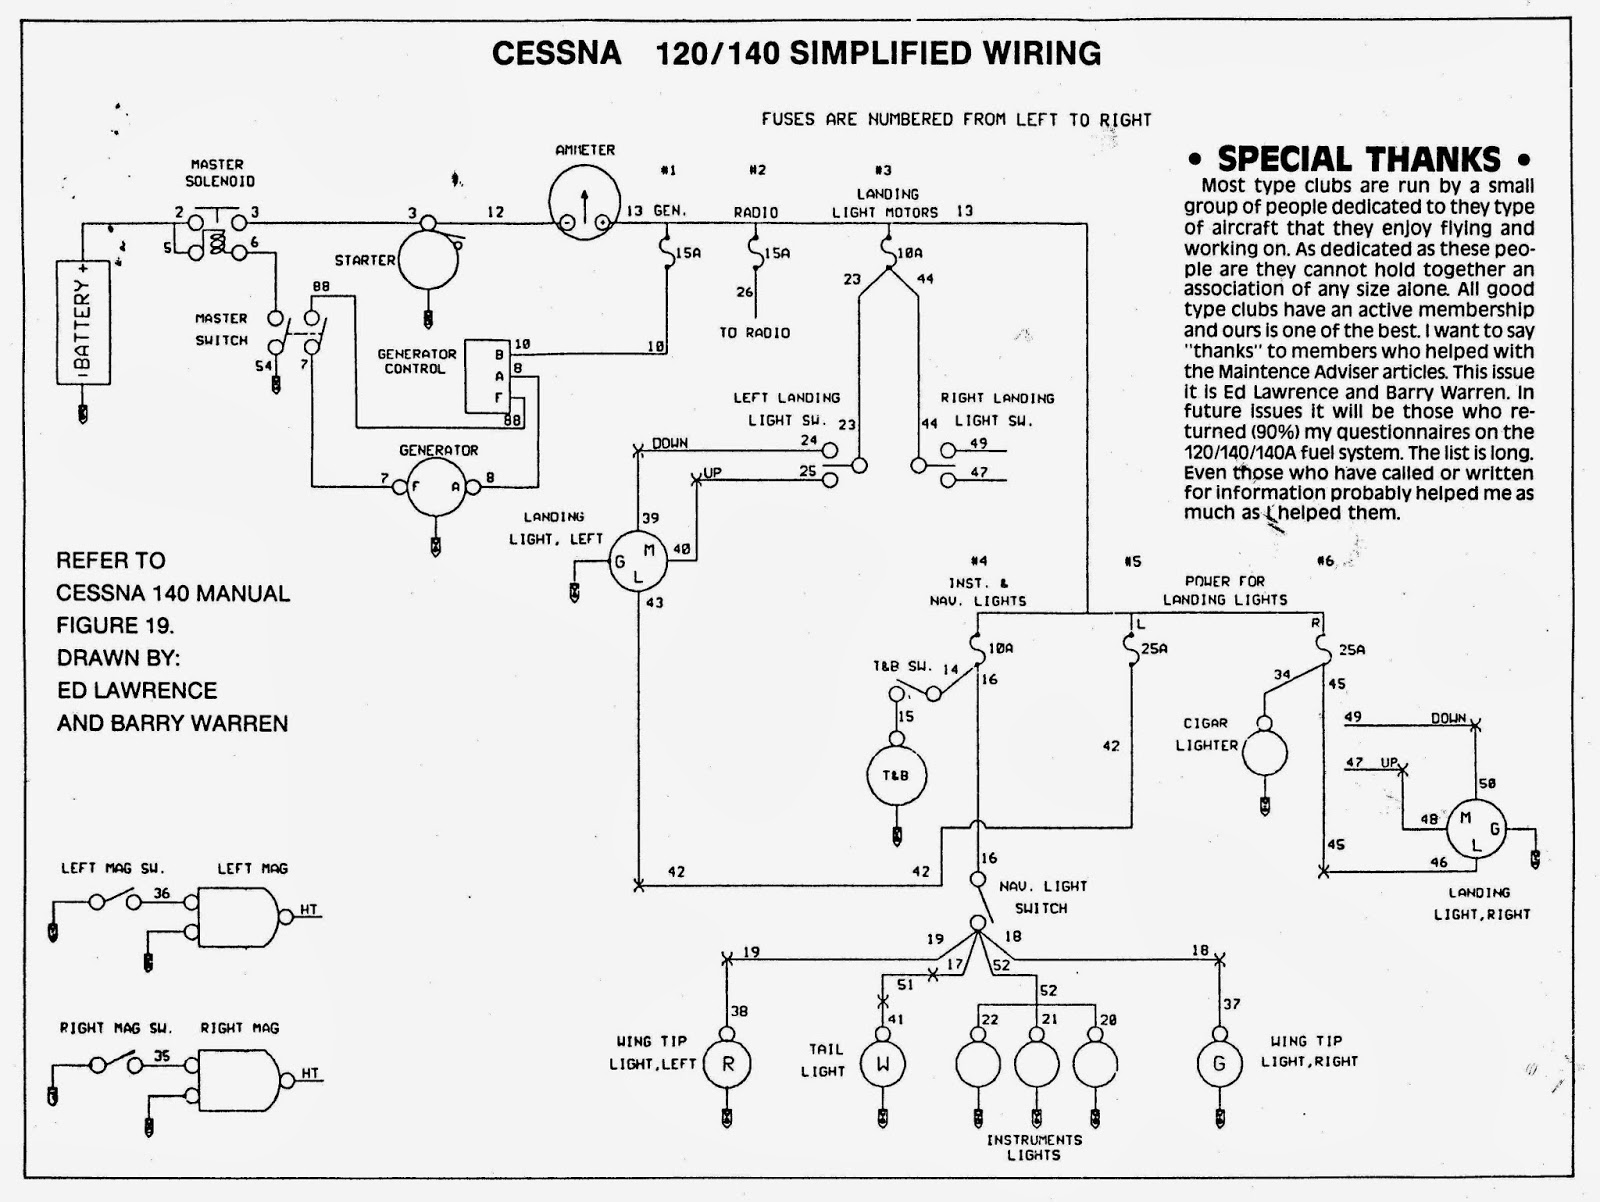 wiring diagram schematic 125v index listing of wiring diagramswiring diagram schematic 125v 4 hyn capecoral bootsvermietung [ 1600 x 1202 Pixel ]